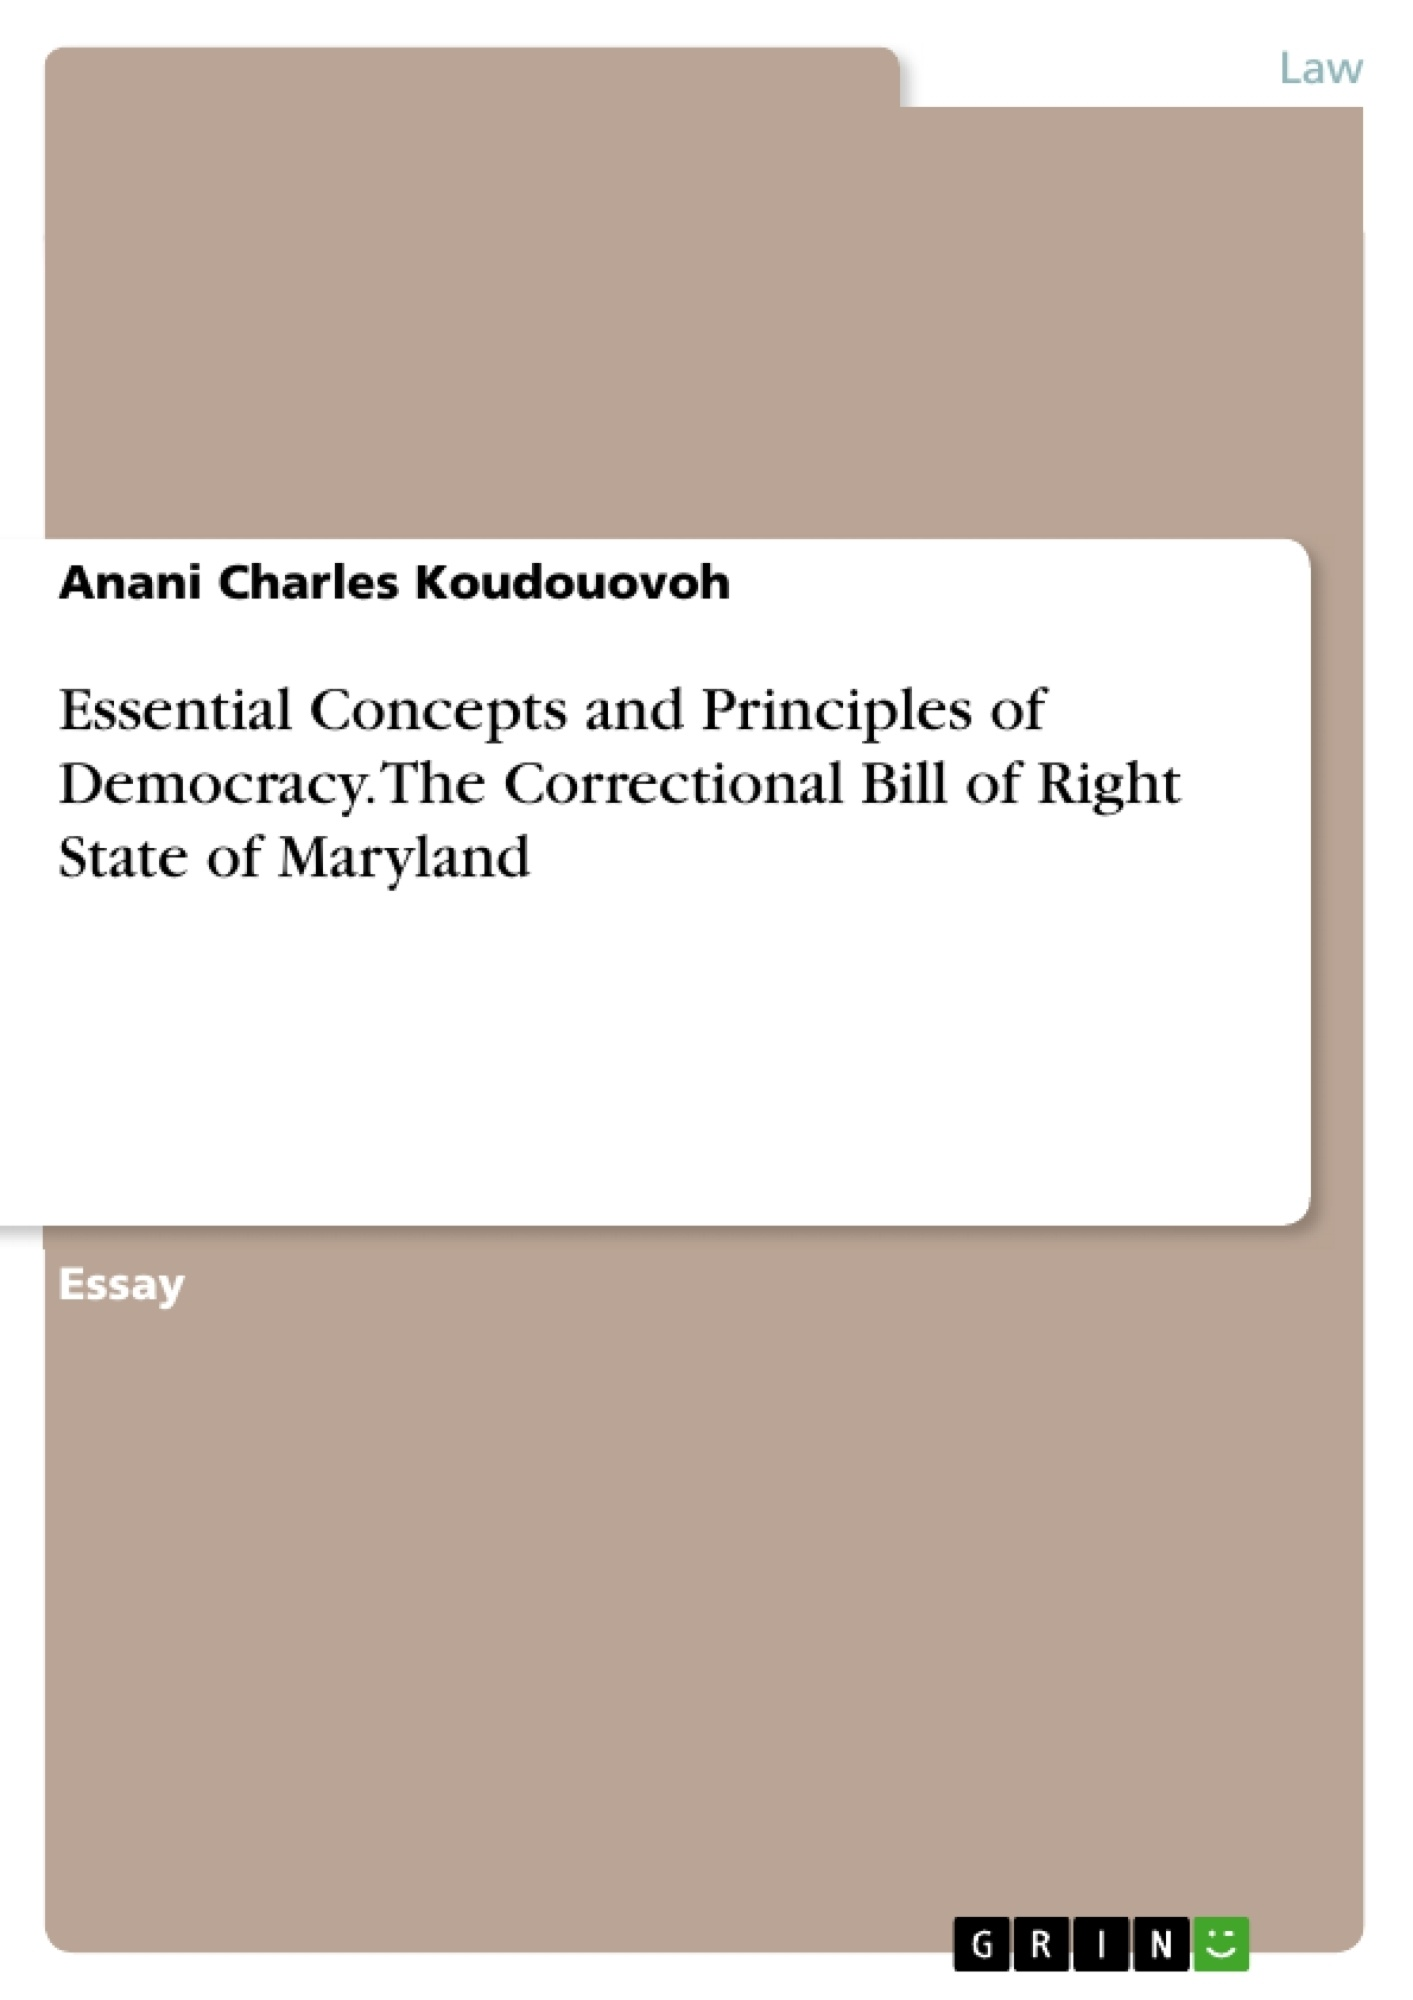 Title: Essential Concepts and Principles of Democracy. The Correctional Bill of Right State of Maryland